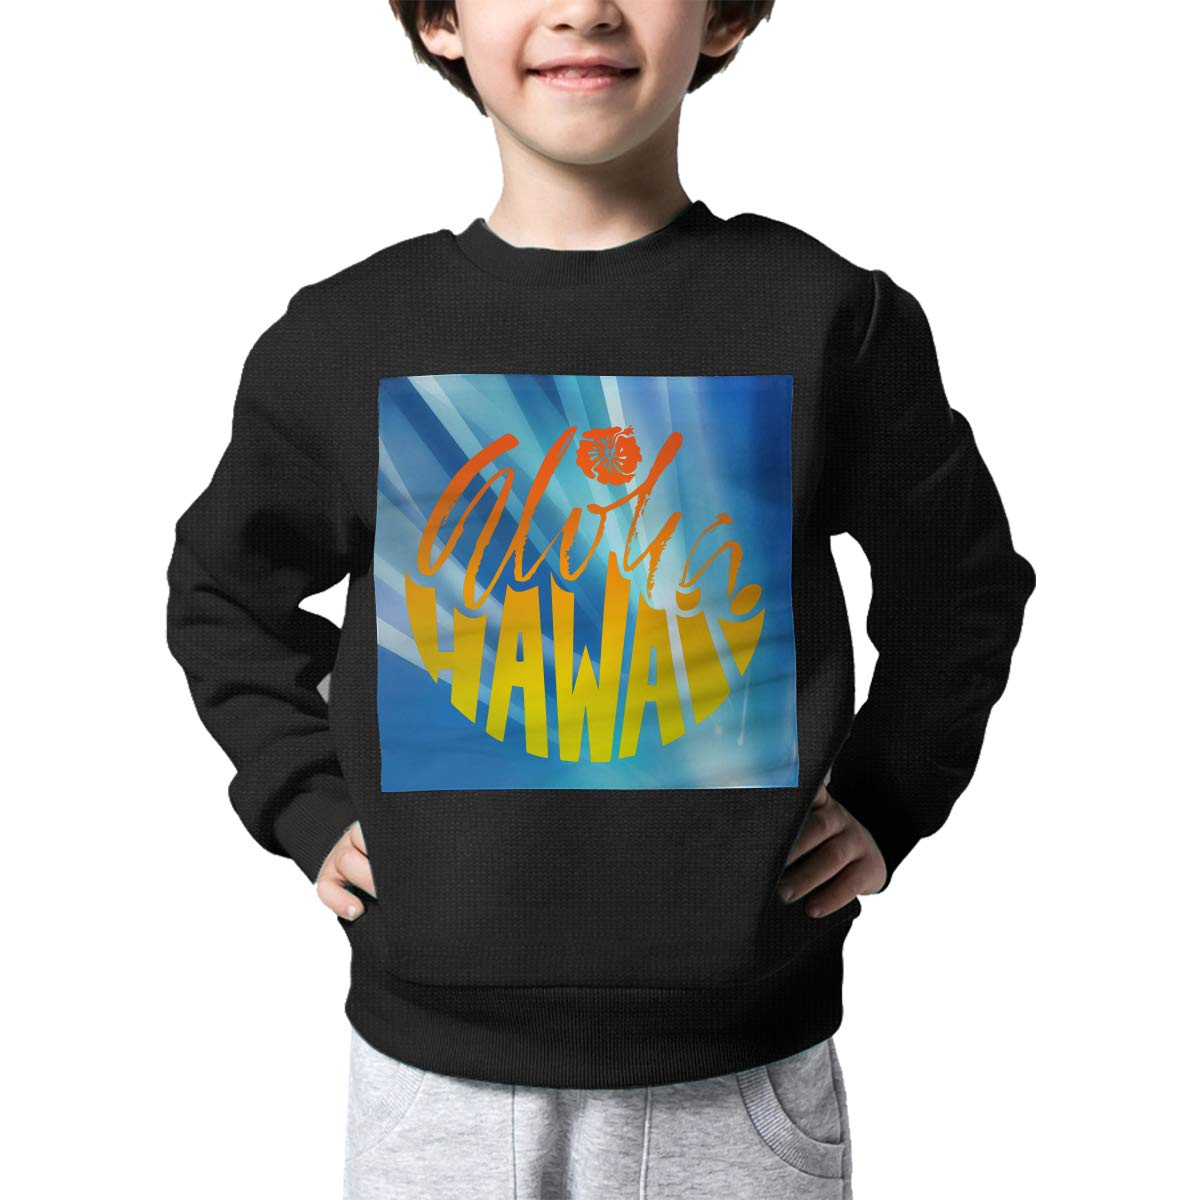 Aloha Hawaii Printed Toddler Childrens Crew Neck Sweater Long Sleeve Soft Knitted Jumper Top